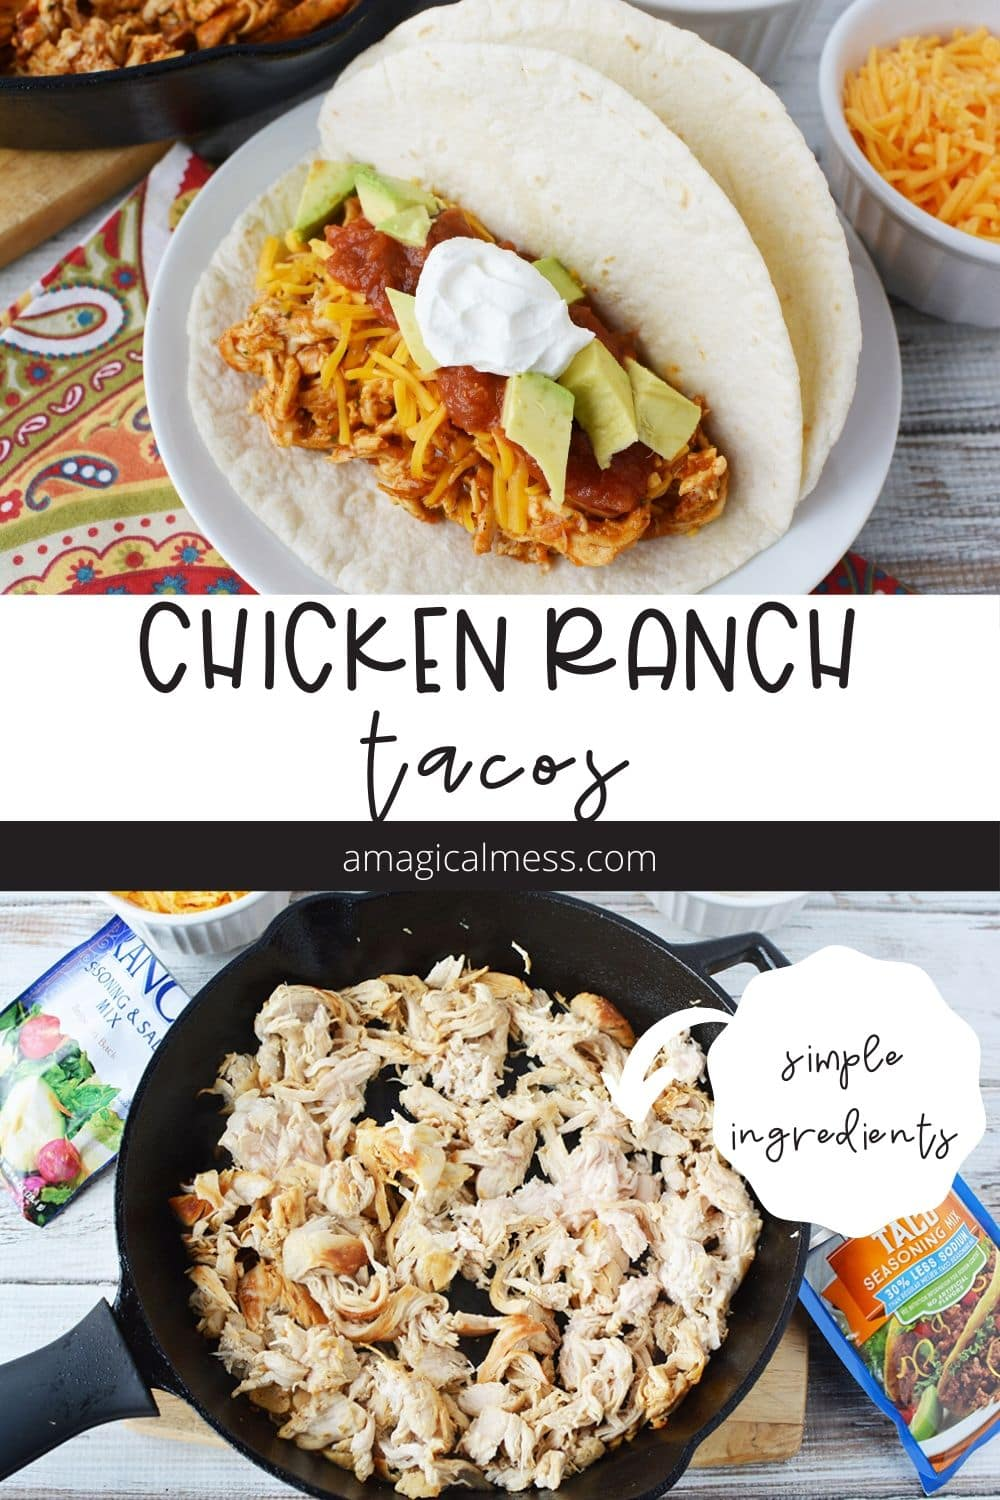 Chicken ranch tacos in a shell and in a skillet